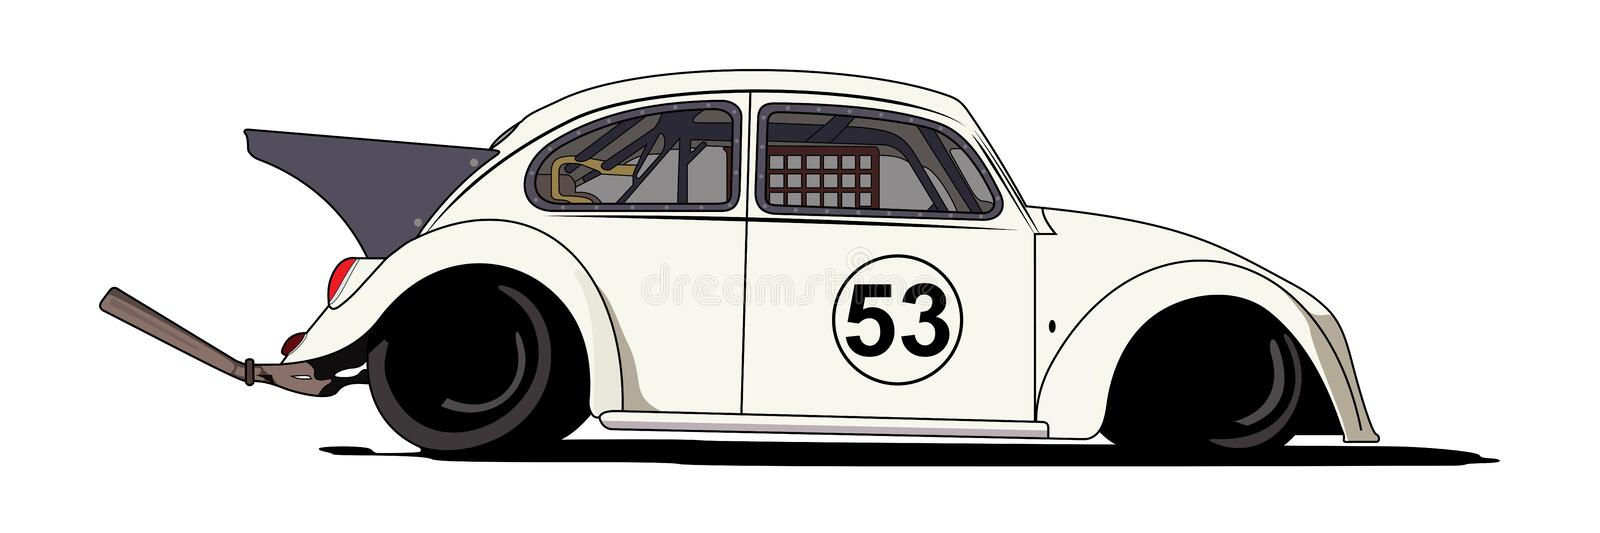 VW Beetle Herbie 1963 vector illustration